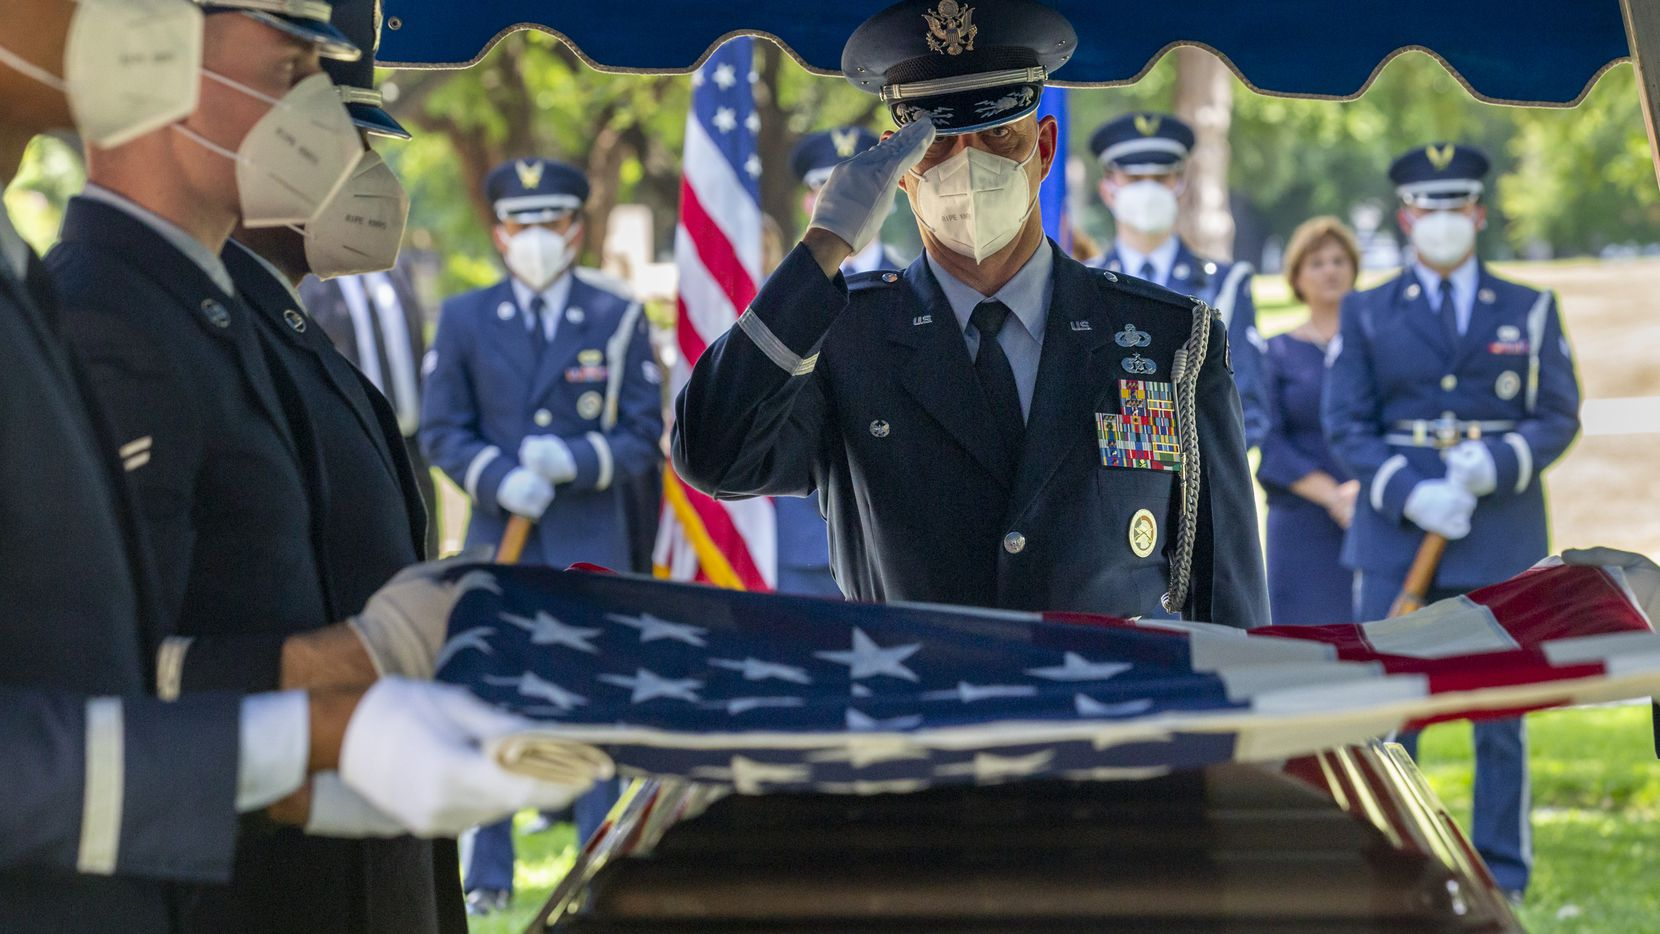 An Air Force Honor Guard member salutes during the funeral for Congressman Sam Johnson at the Restland Memorial Park in Dallas on Monday, June 8, 2020. In addition to 28 years of service as a congressional representative for Texas' 3rd District, Johnson was also a fighter pilot, decorated combat veteran and a former Prisoner of War.